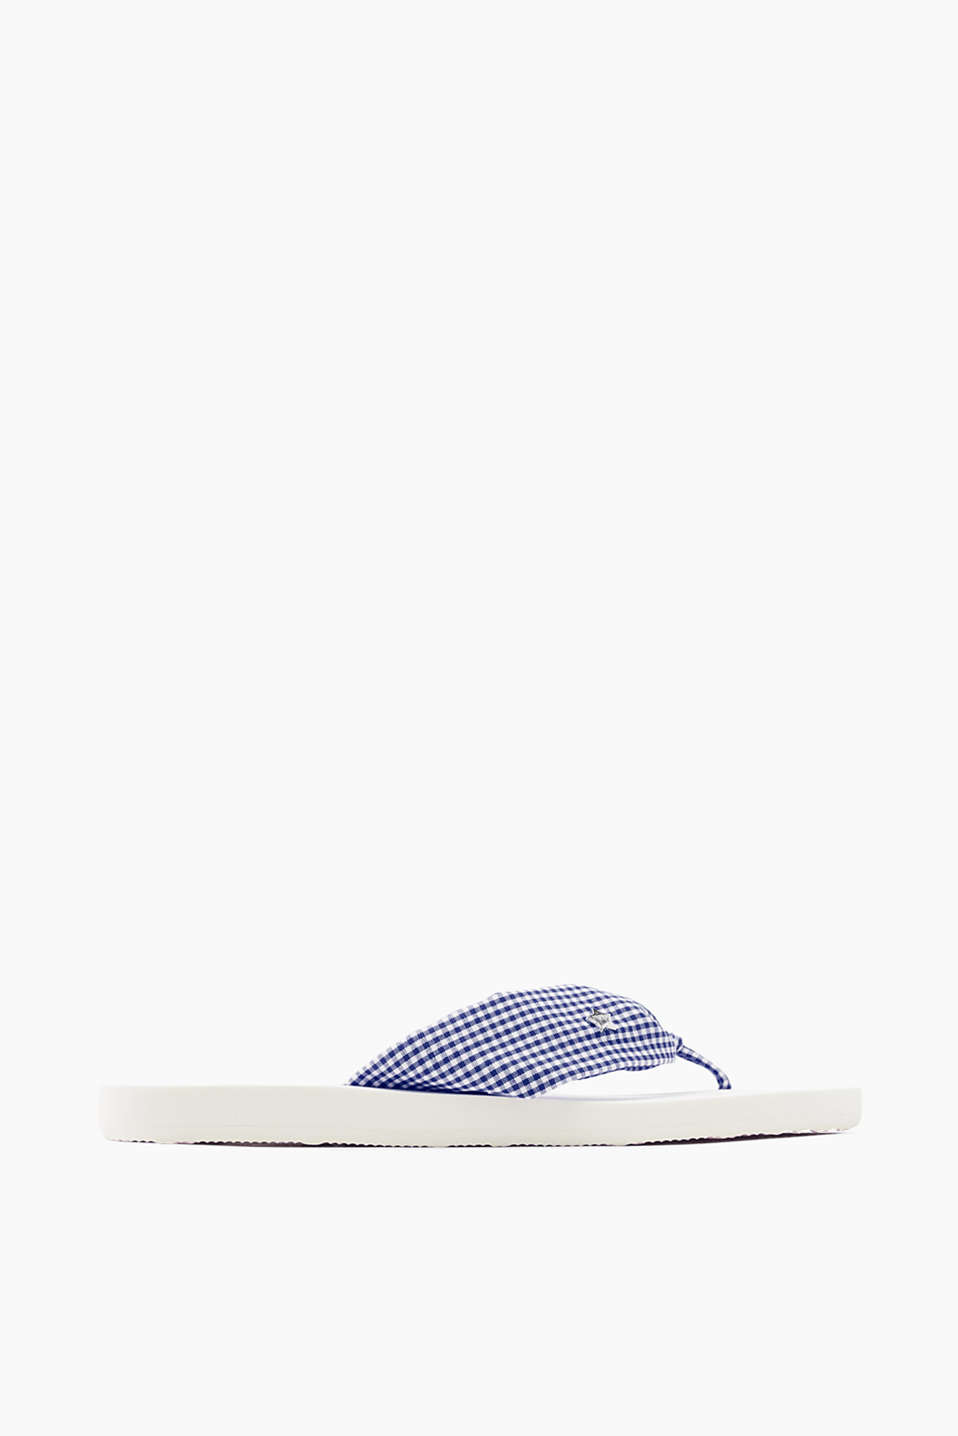 With a rubber sole: slip slops with woven cotton straps